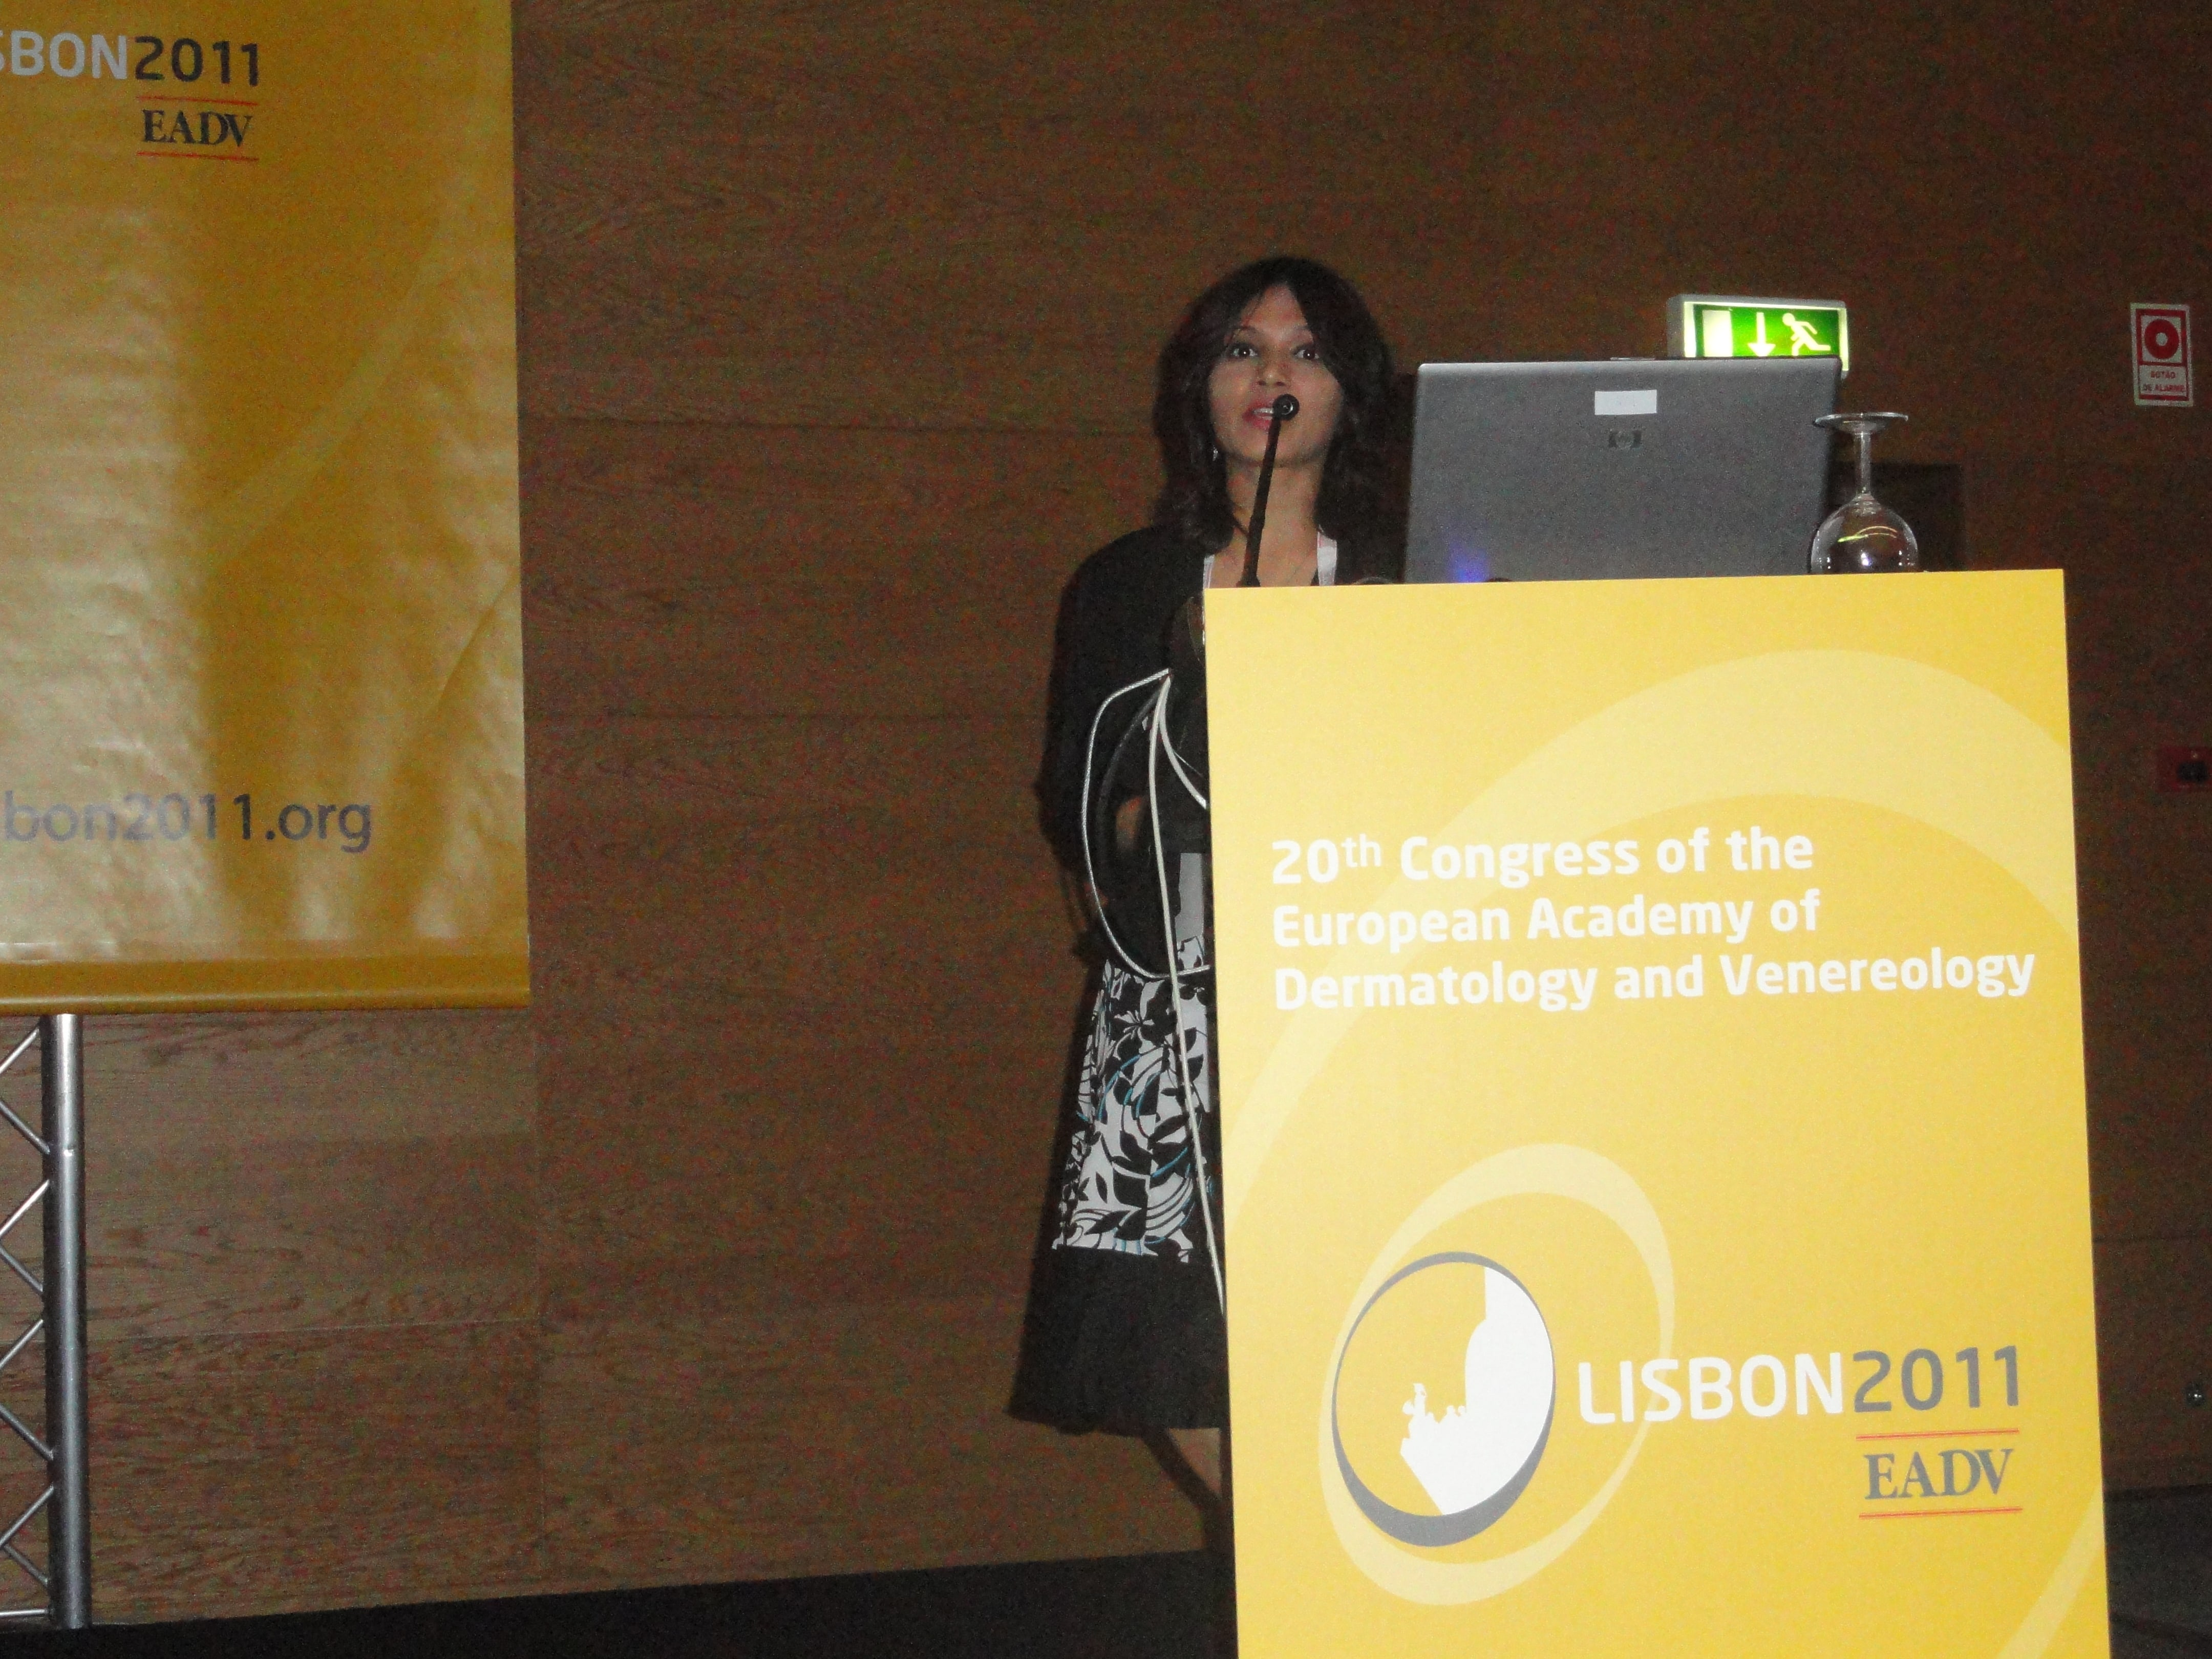 2011- Lisbon - 20th Conference ofCongress of European Academy of Dermatology and Venereology